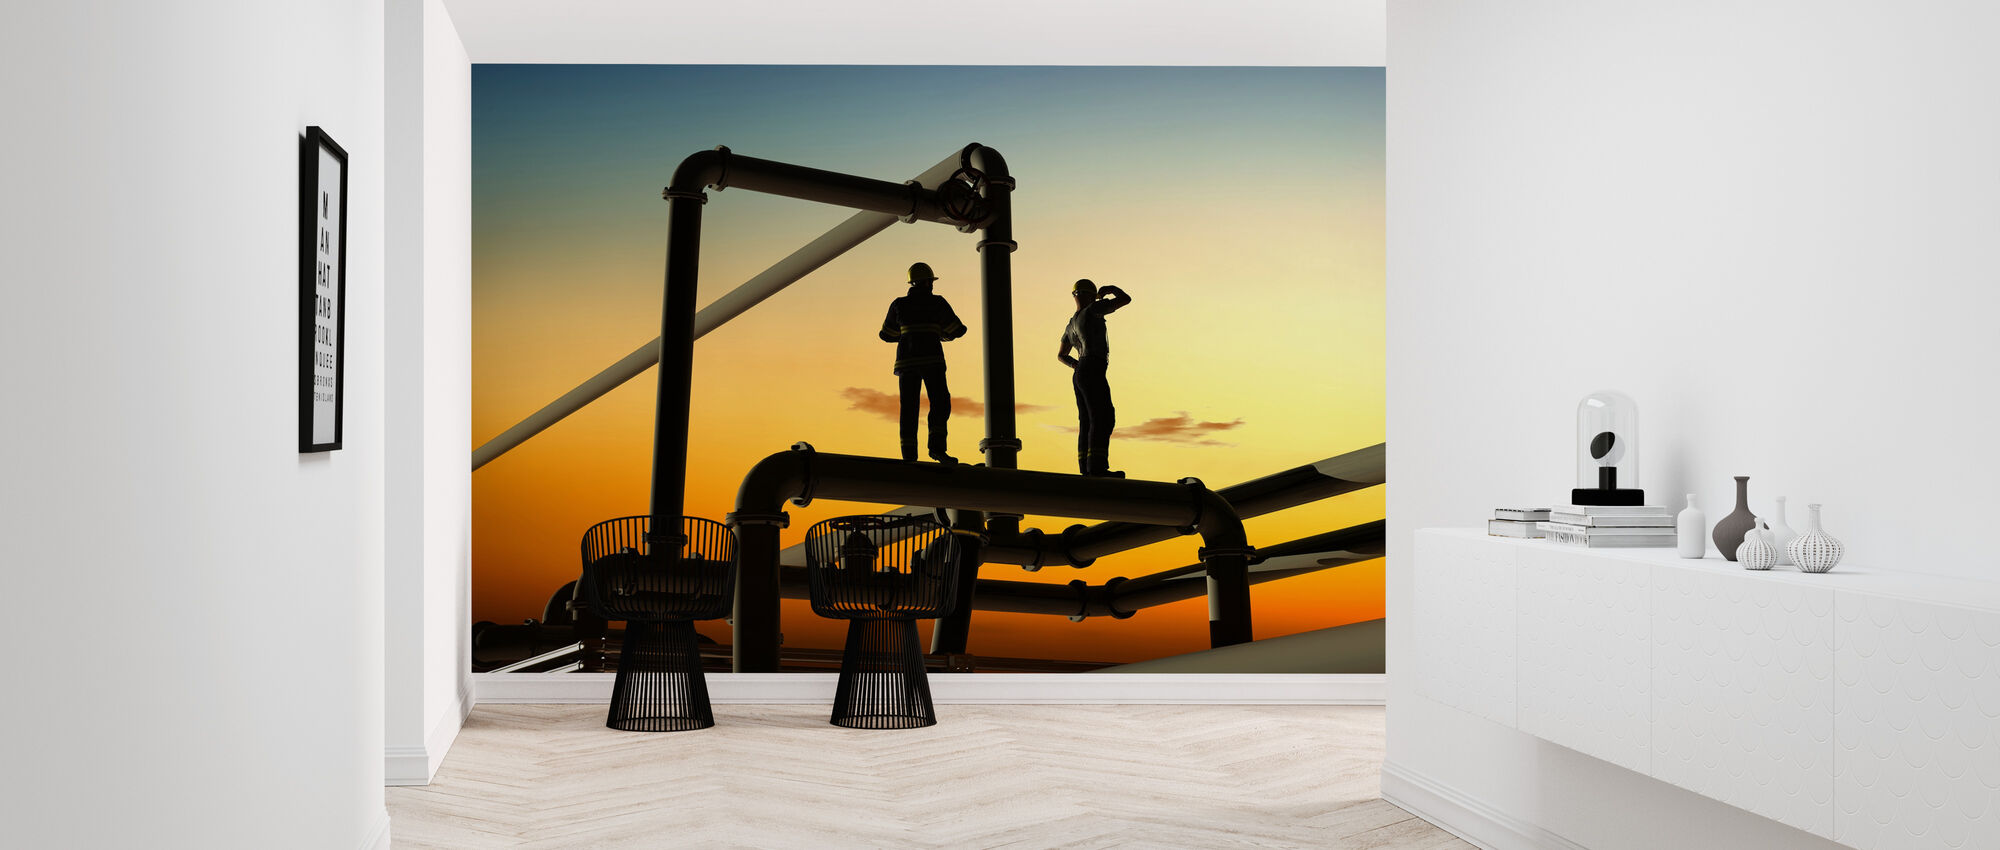 Oil Workers and Pipes in Sunset - Wallpaper - Hallway